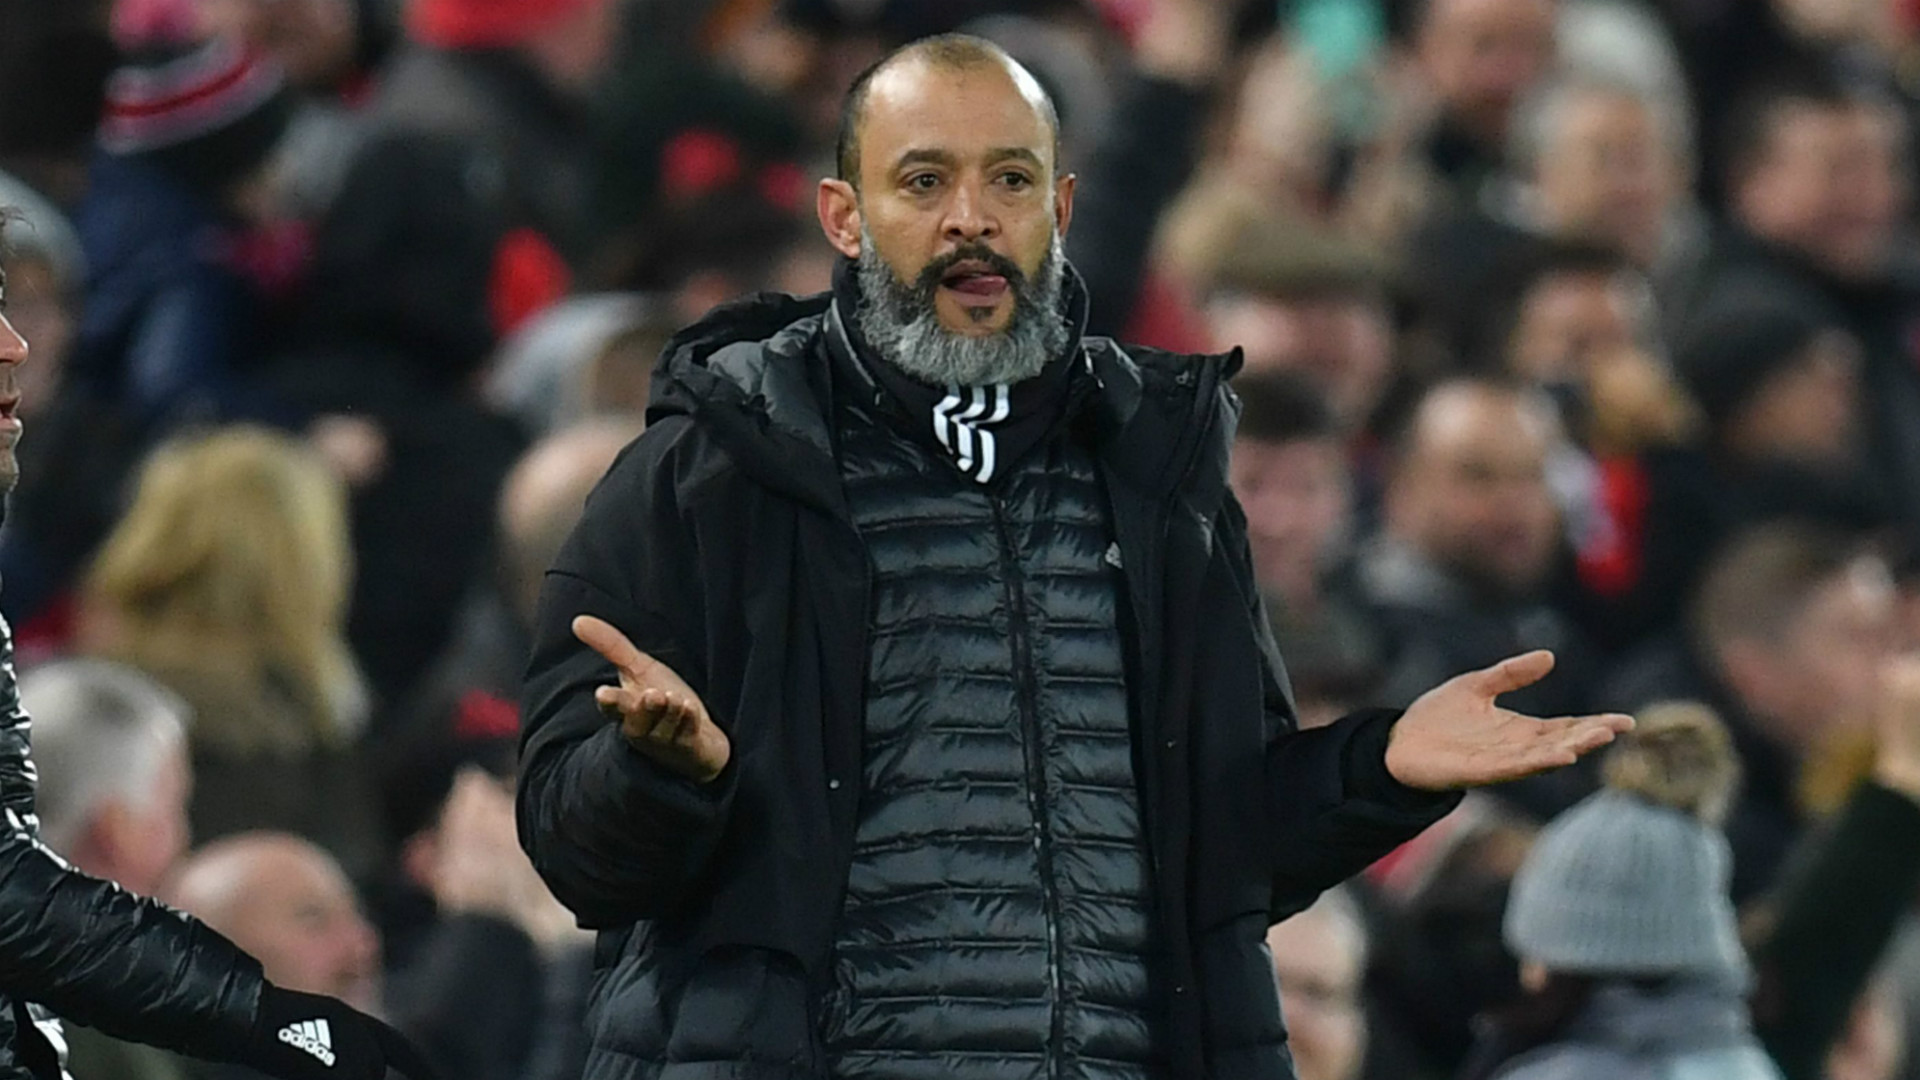 'People are dead and dying' - Wolves boss Nuno slams 'absurd' decision to continue playing amid coronavirus pandemic